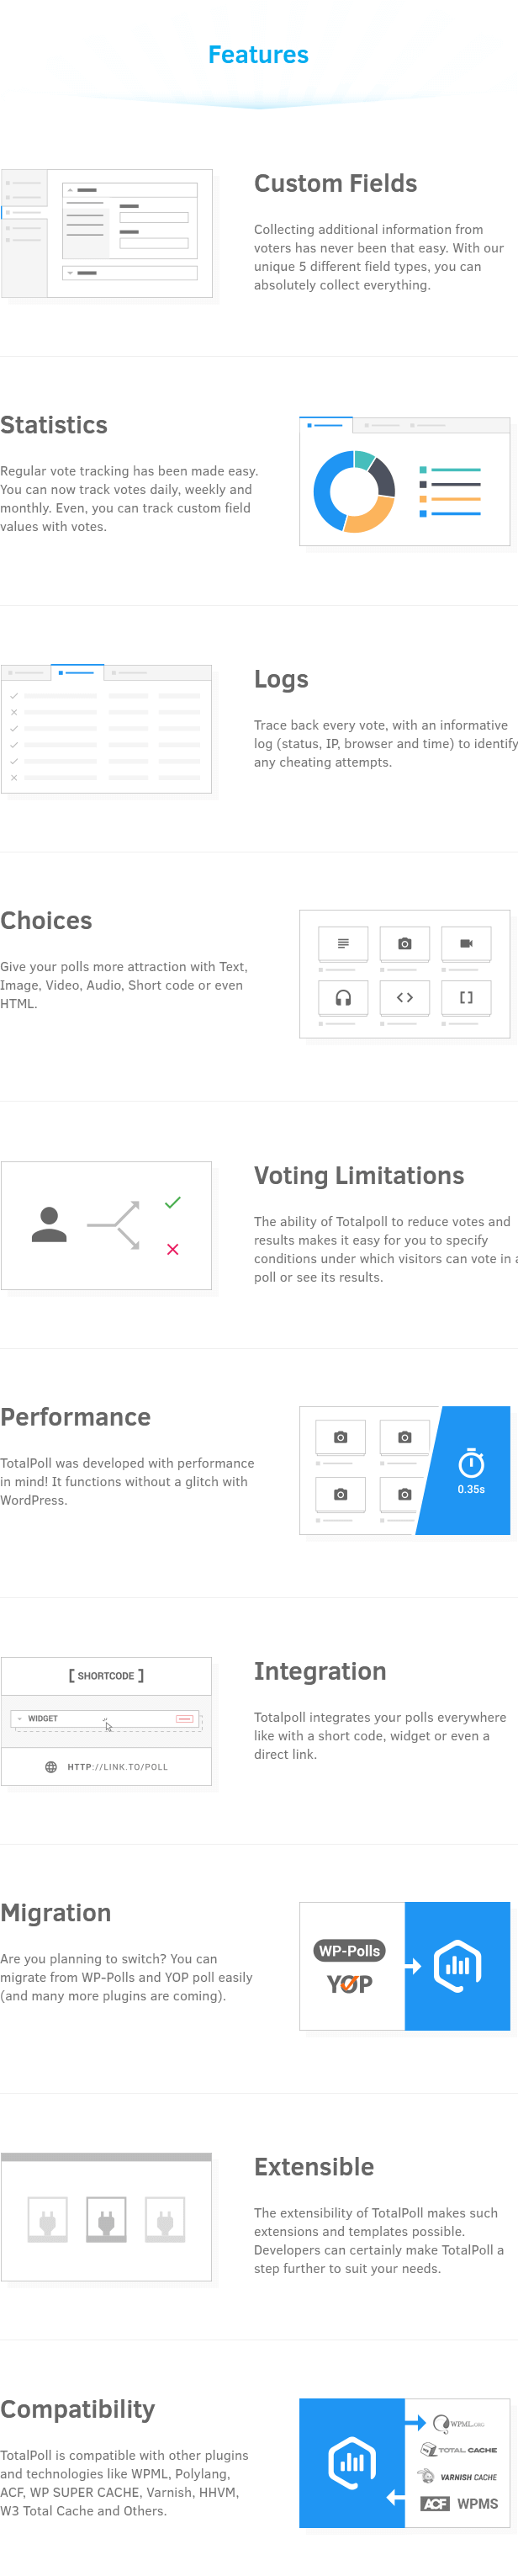 Custom fields, statistics, logs, choices, voting limitations, performance, integration, migration, extensible and compatibility in TotalPoll WordPress poll plugin.